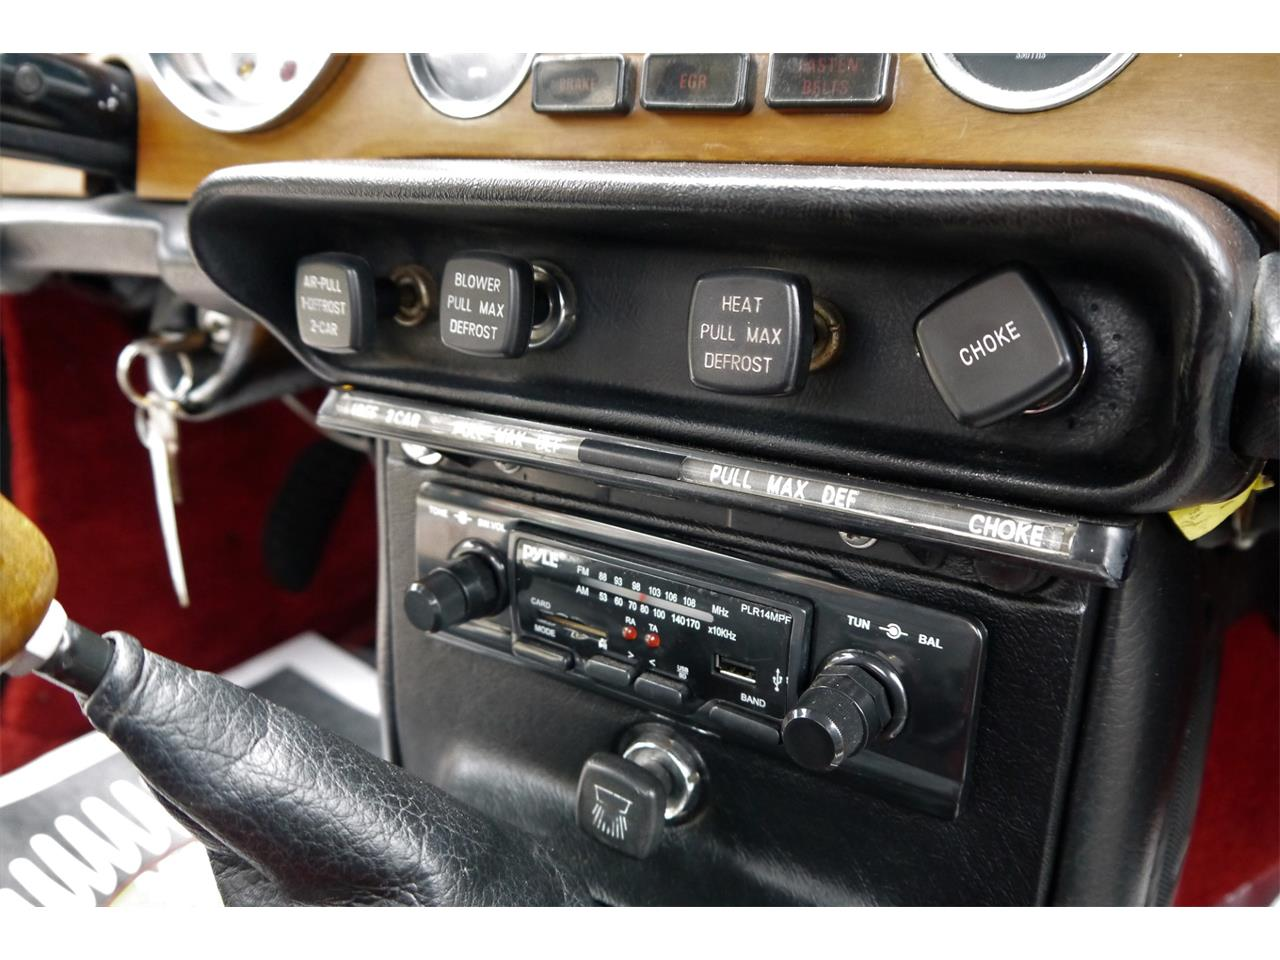 1976 Triumph TR6 for sale in Brentwood, TN – photo 8